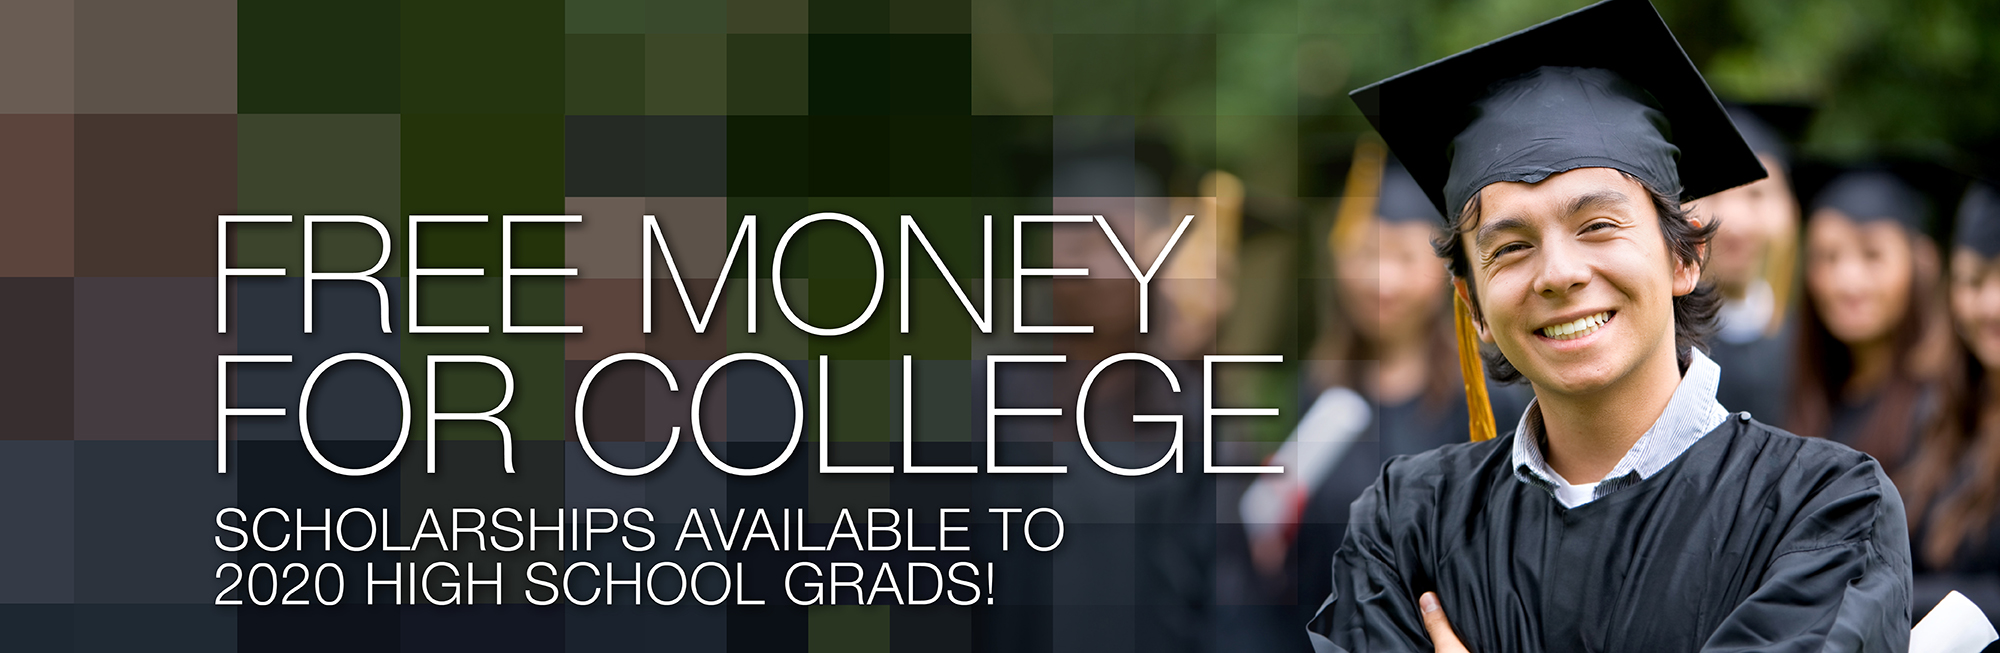 Free money for college! Scholarships available to 2020 high school grads!